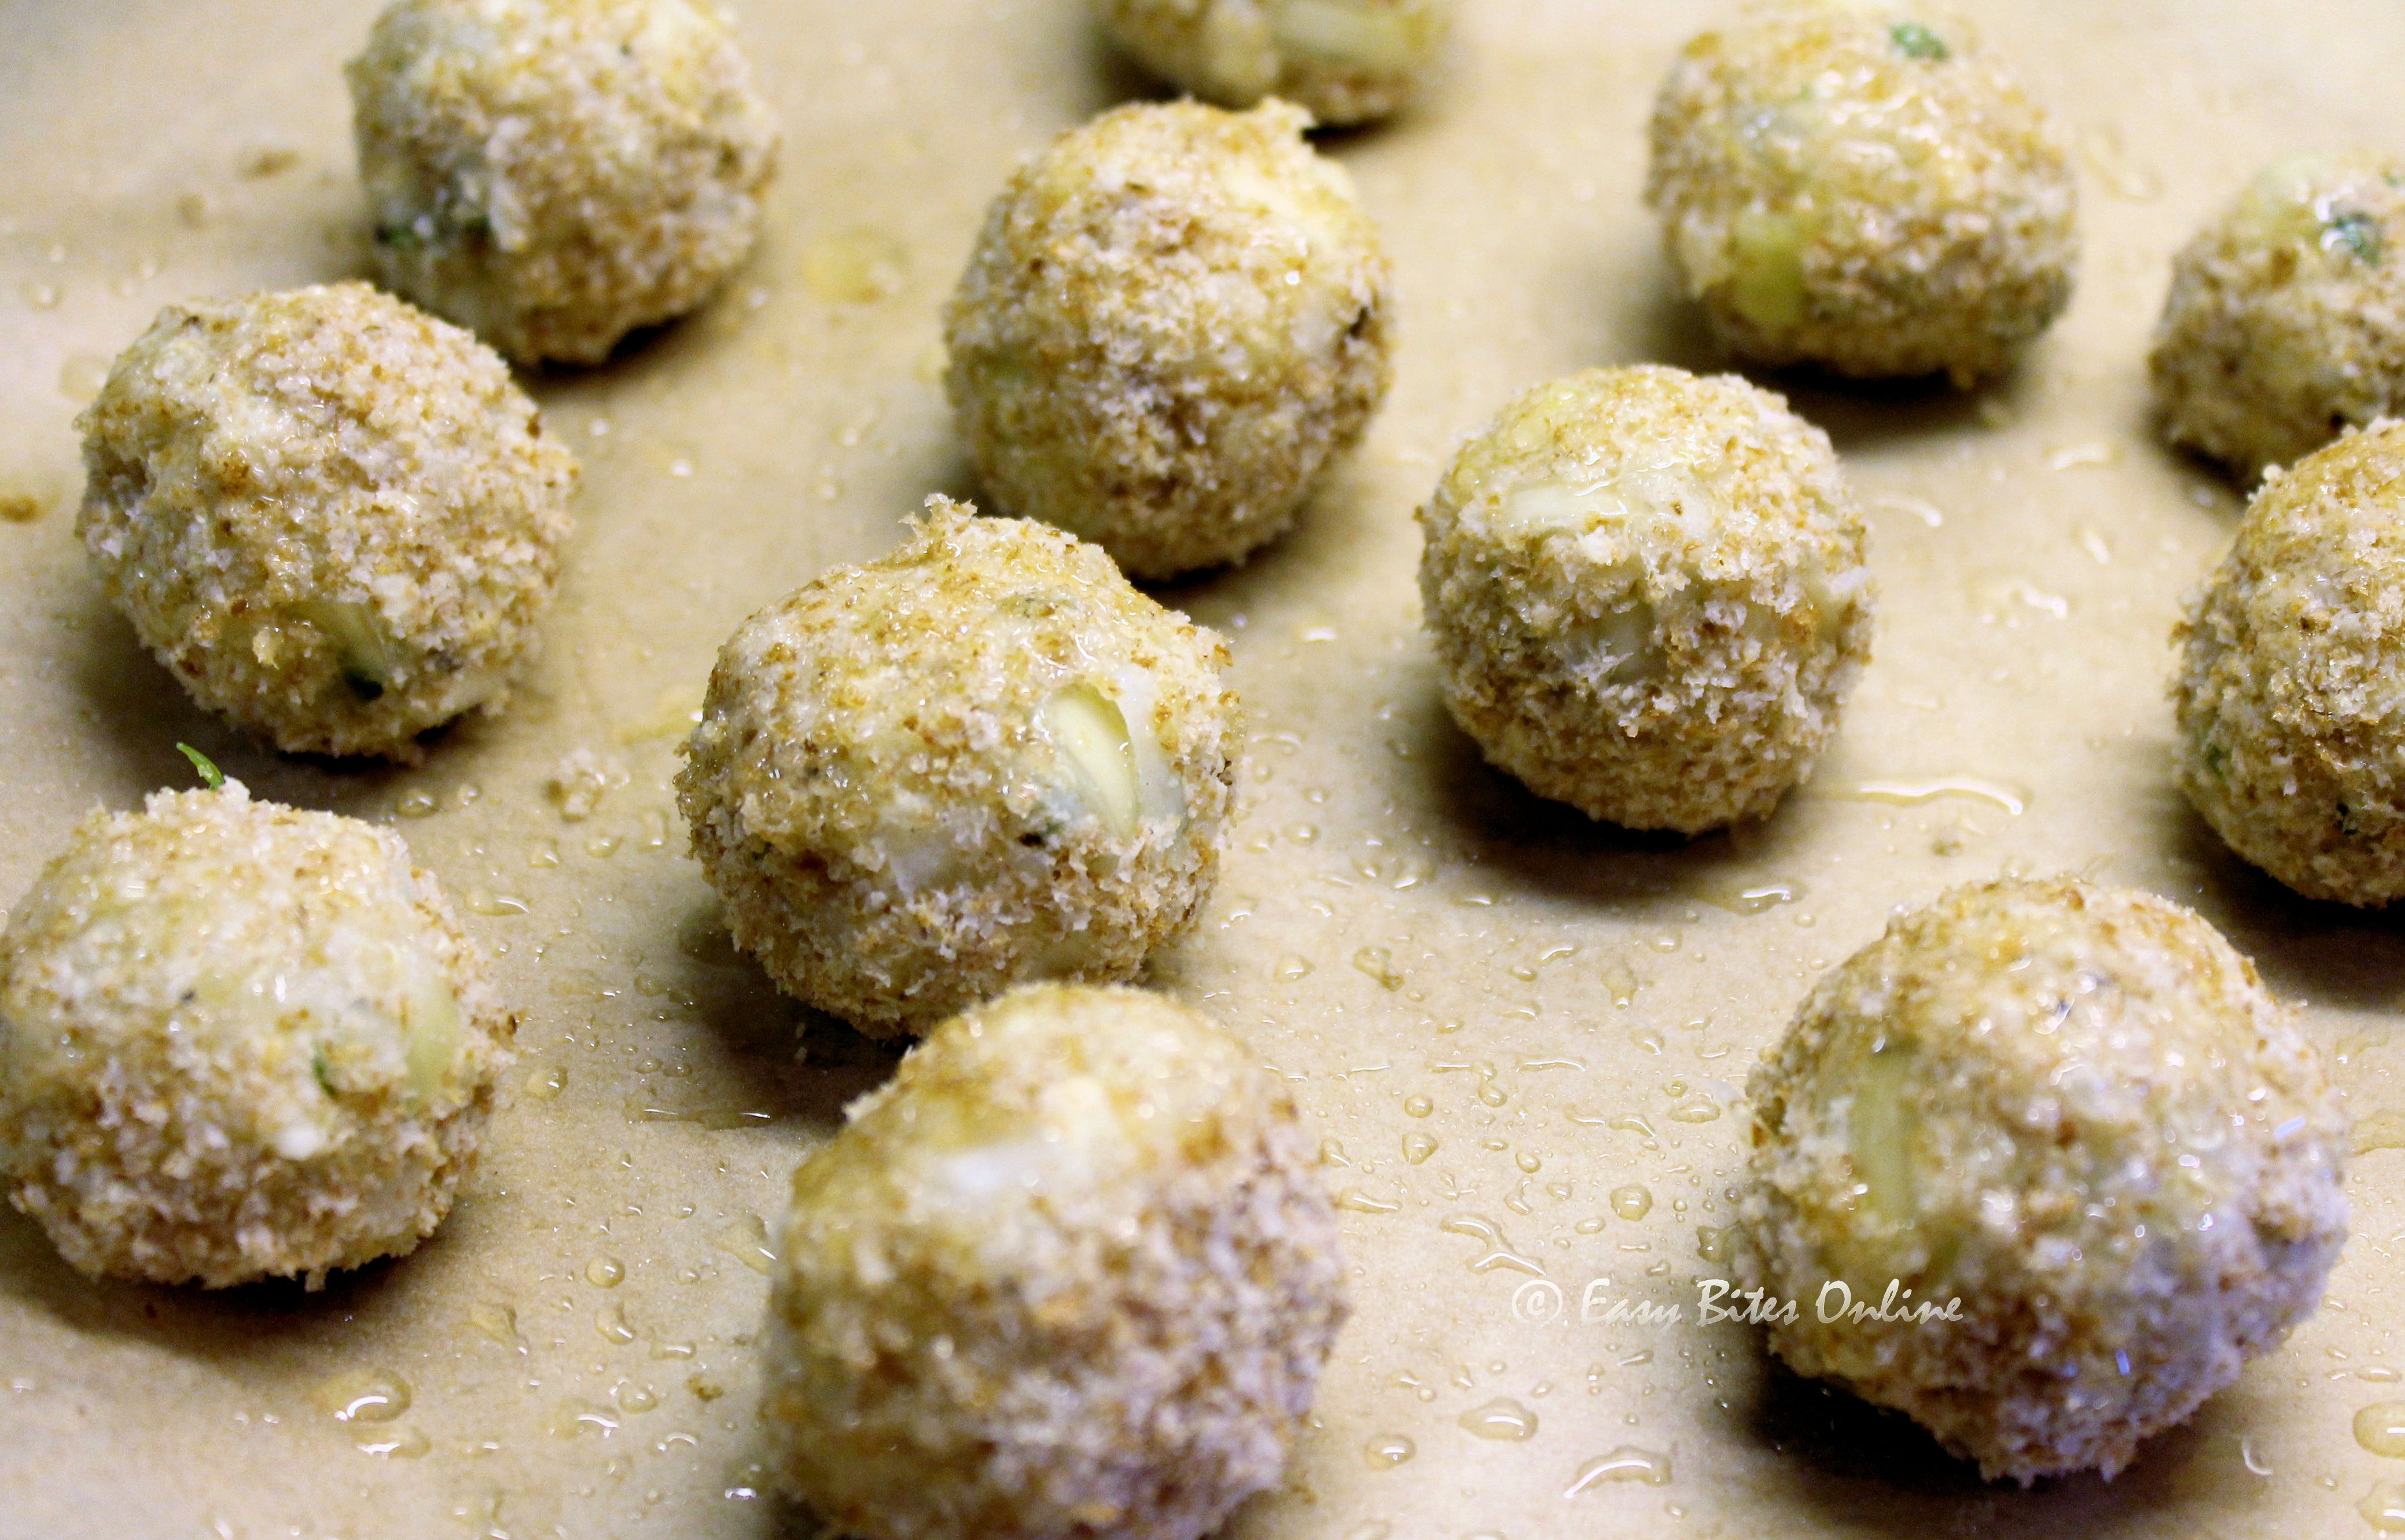 place the prepared balls over lined greased baking tray, bake at 190 deg C until golden